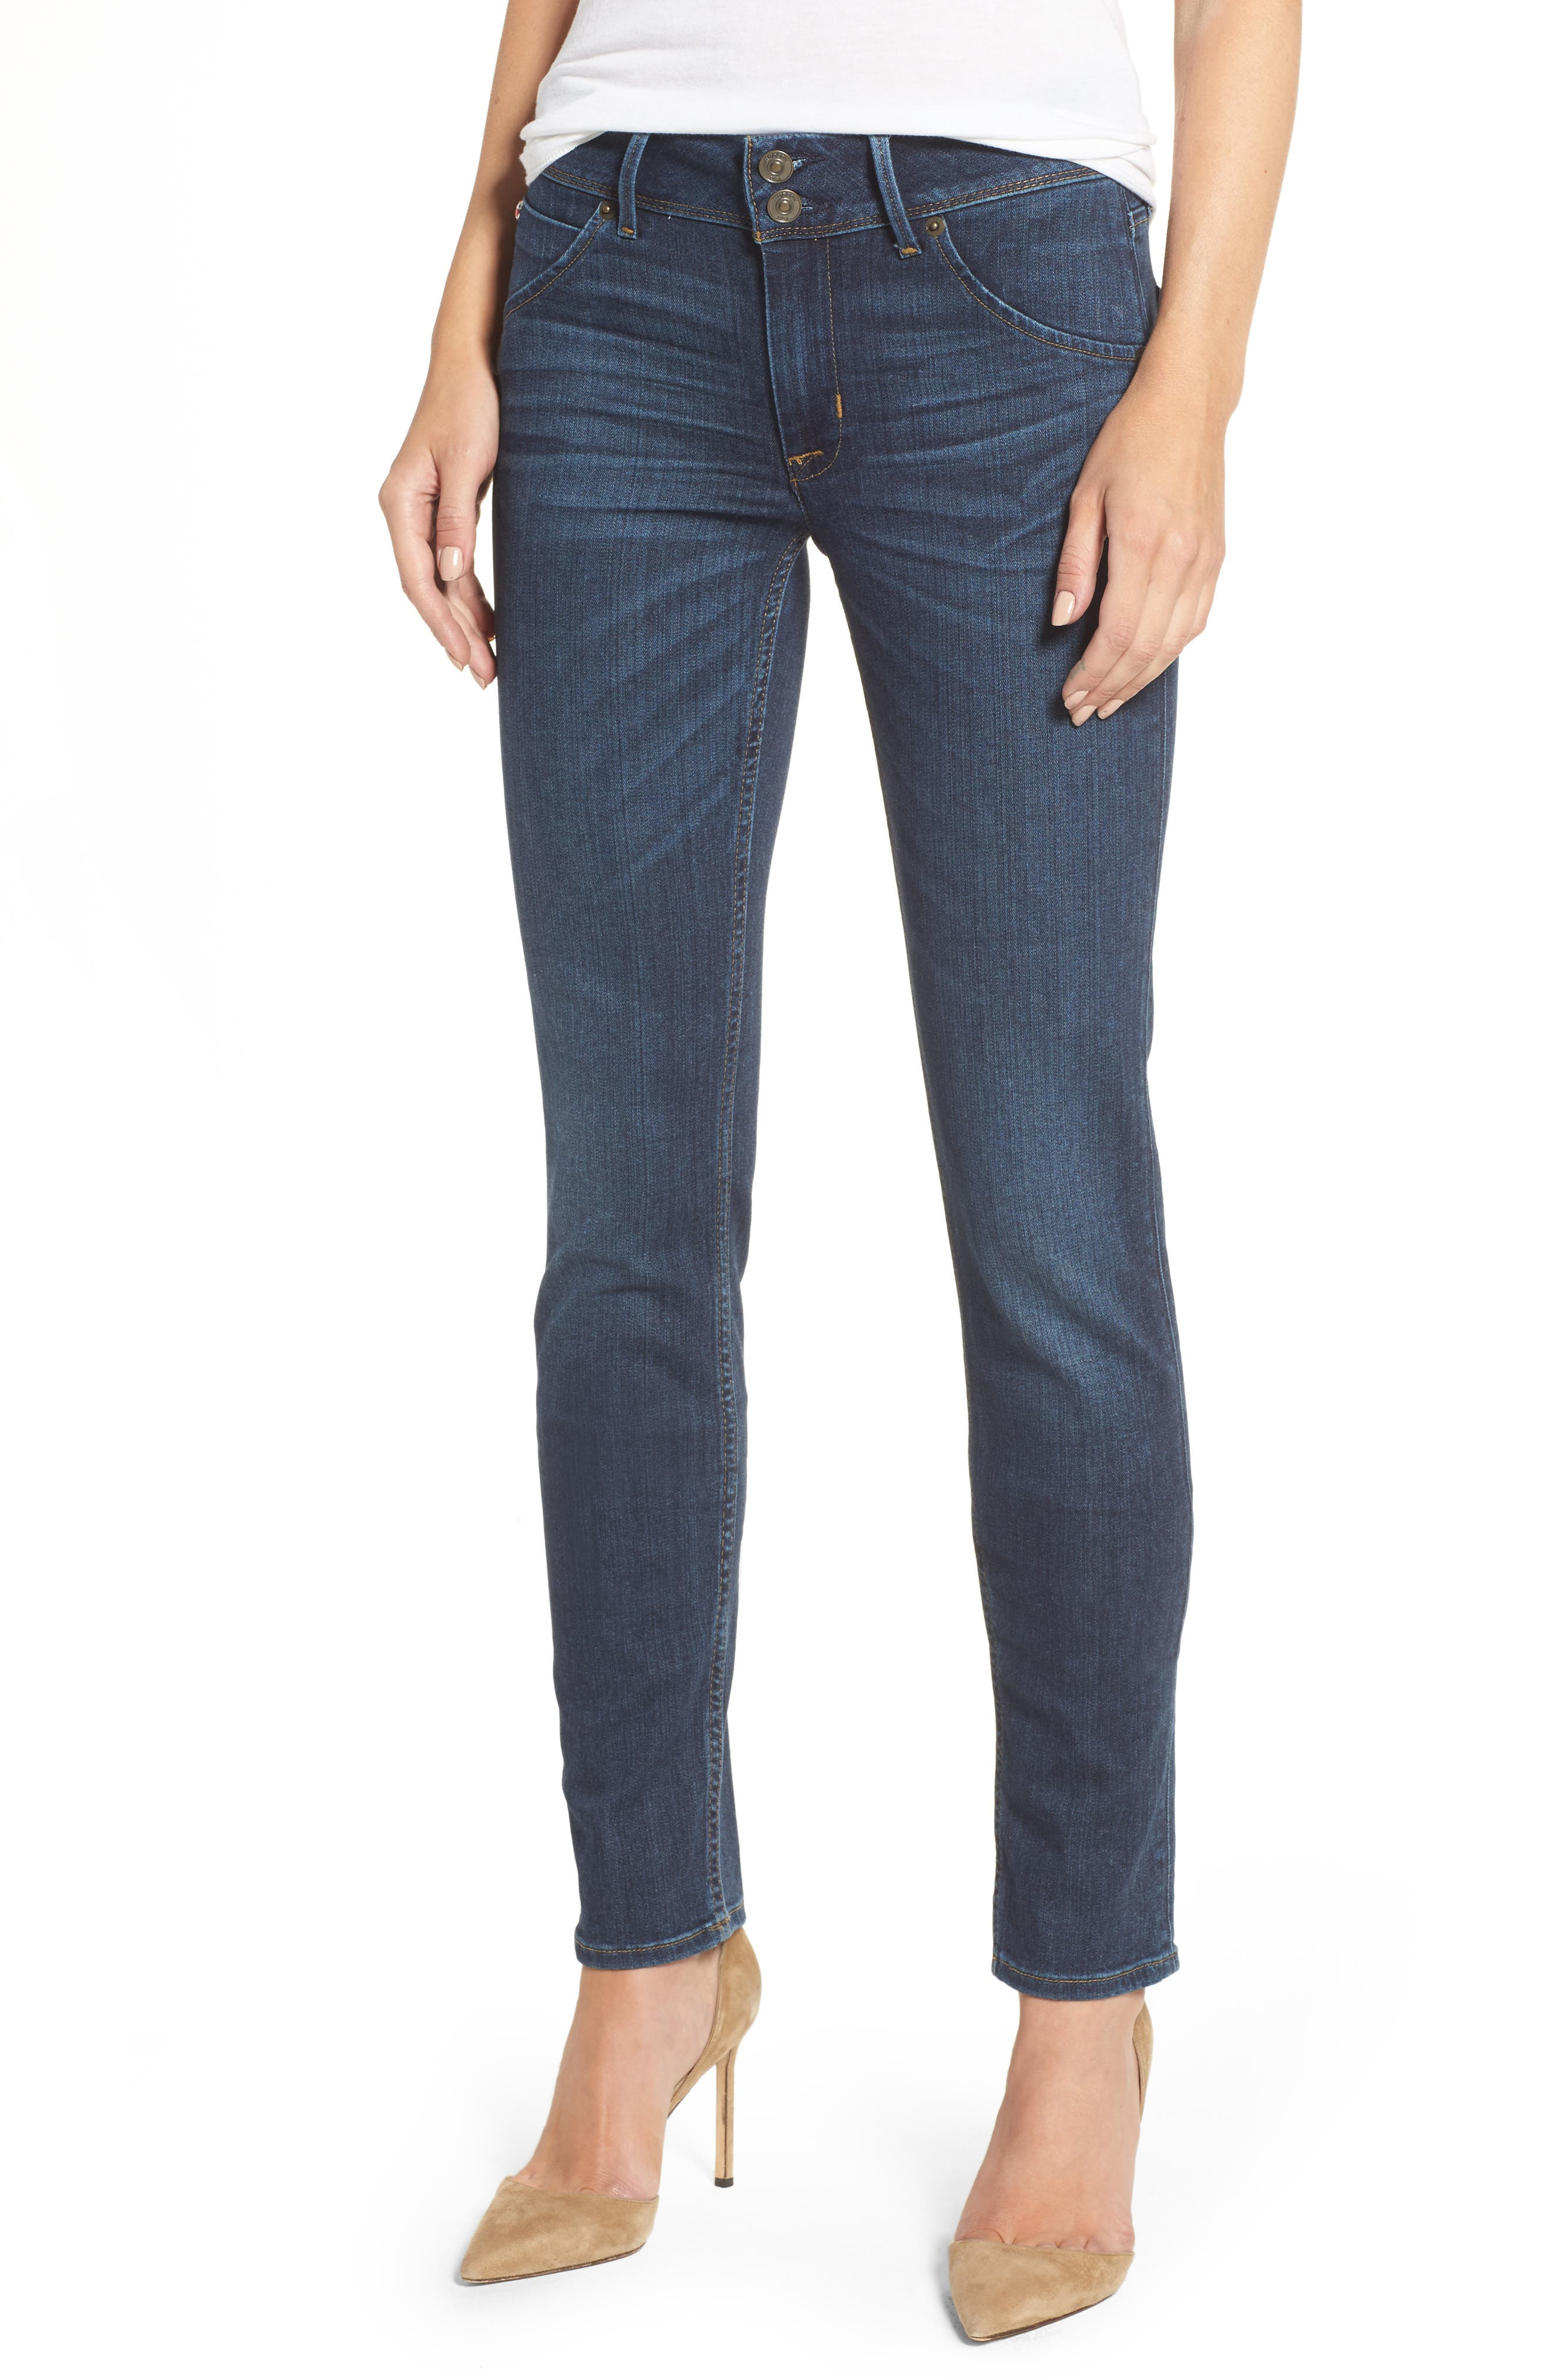 Main Image - Hudson Jeans Collin Supermodel Skinny Jeans (Spellbound)